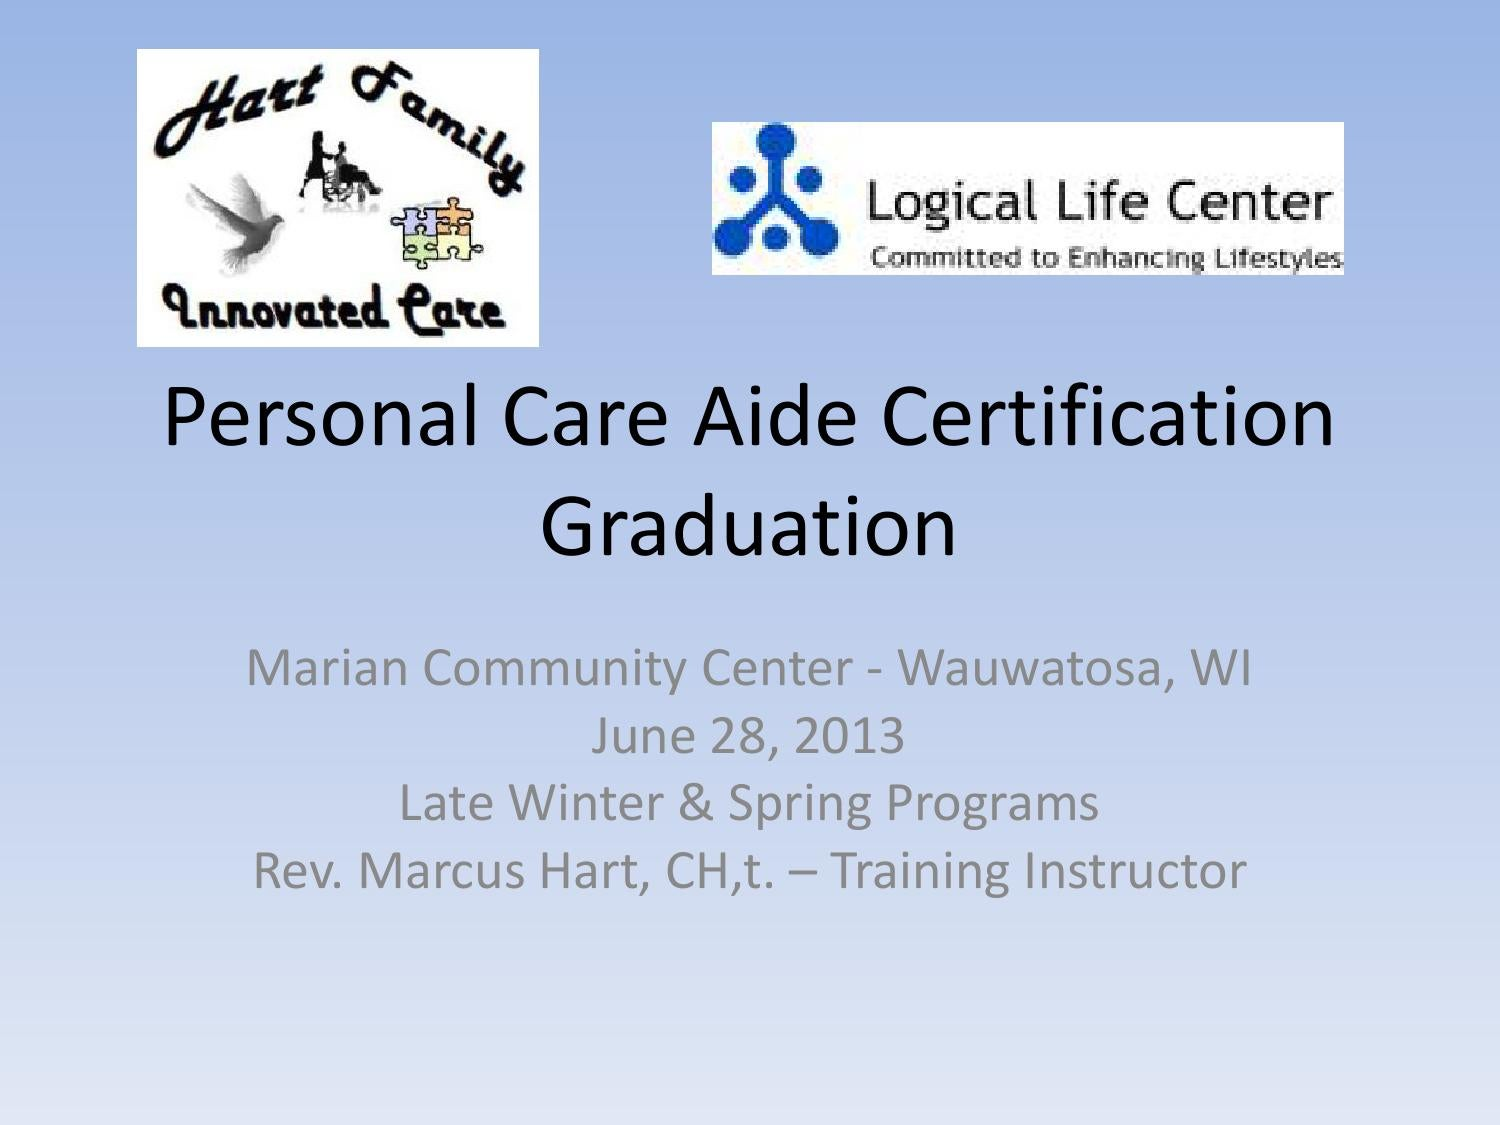 Personal Care Aide Certification Graduation Program By Marcus Hart